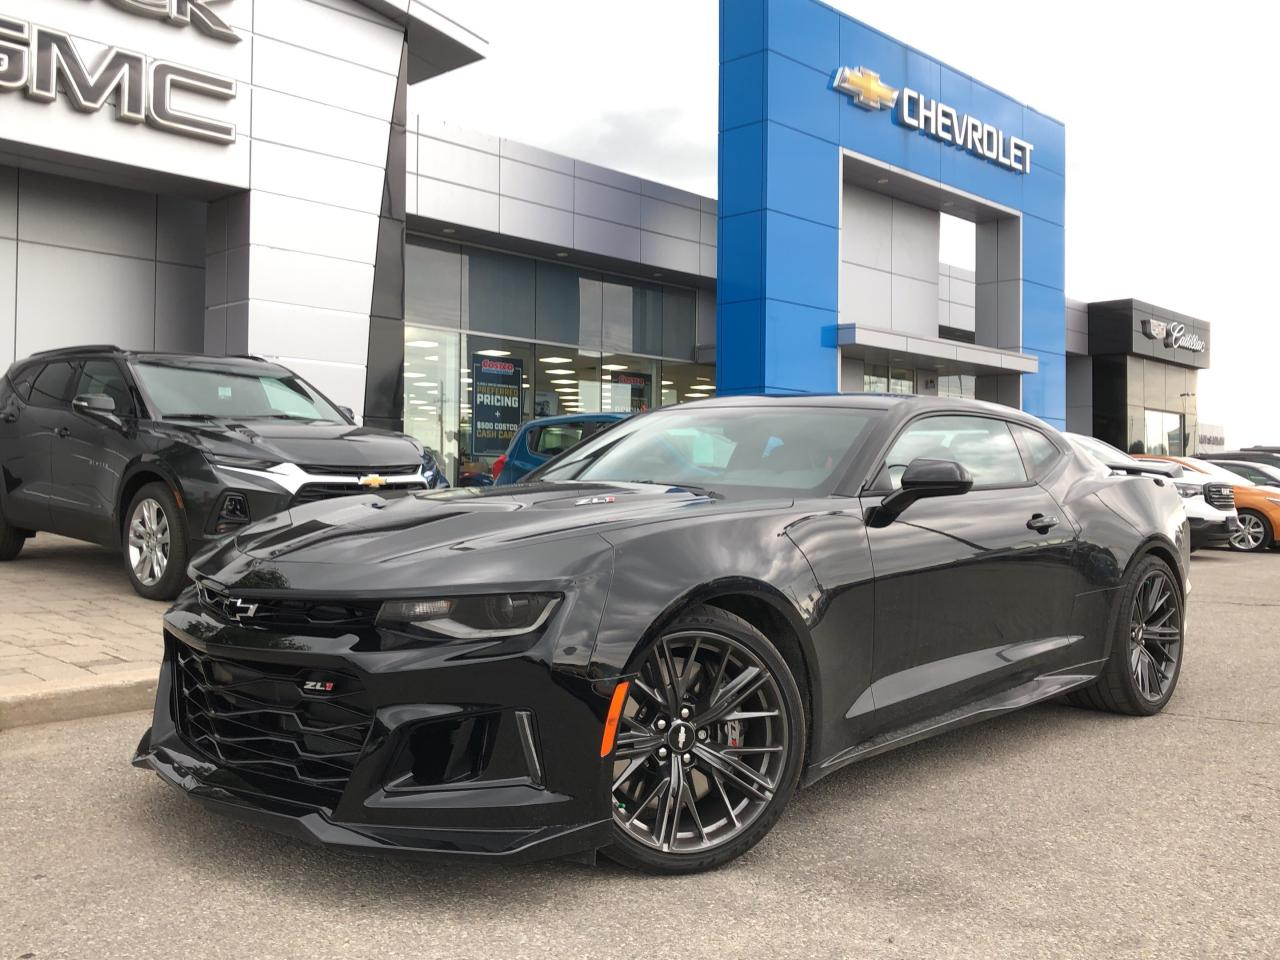 Used Camaro Zl1 For Sale >> Used 2019 Chevrolet Camaro Zl1 For Sale In Barrie Ontario